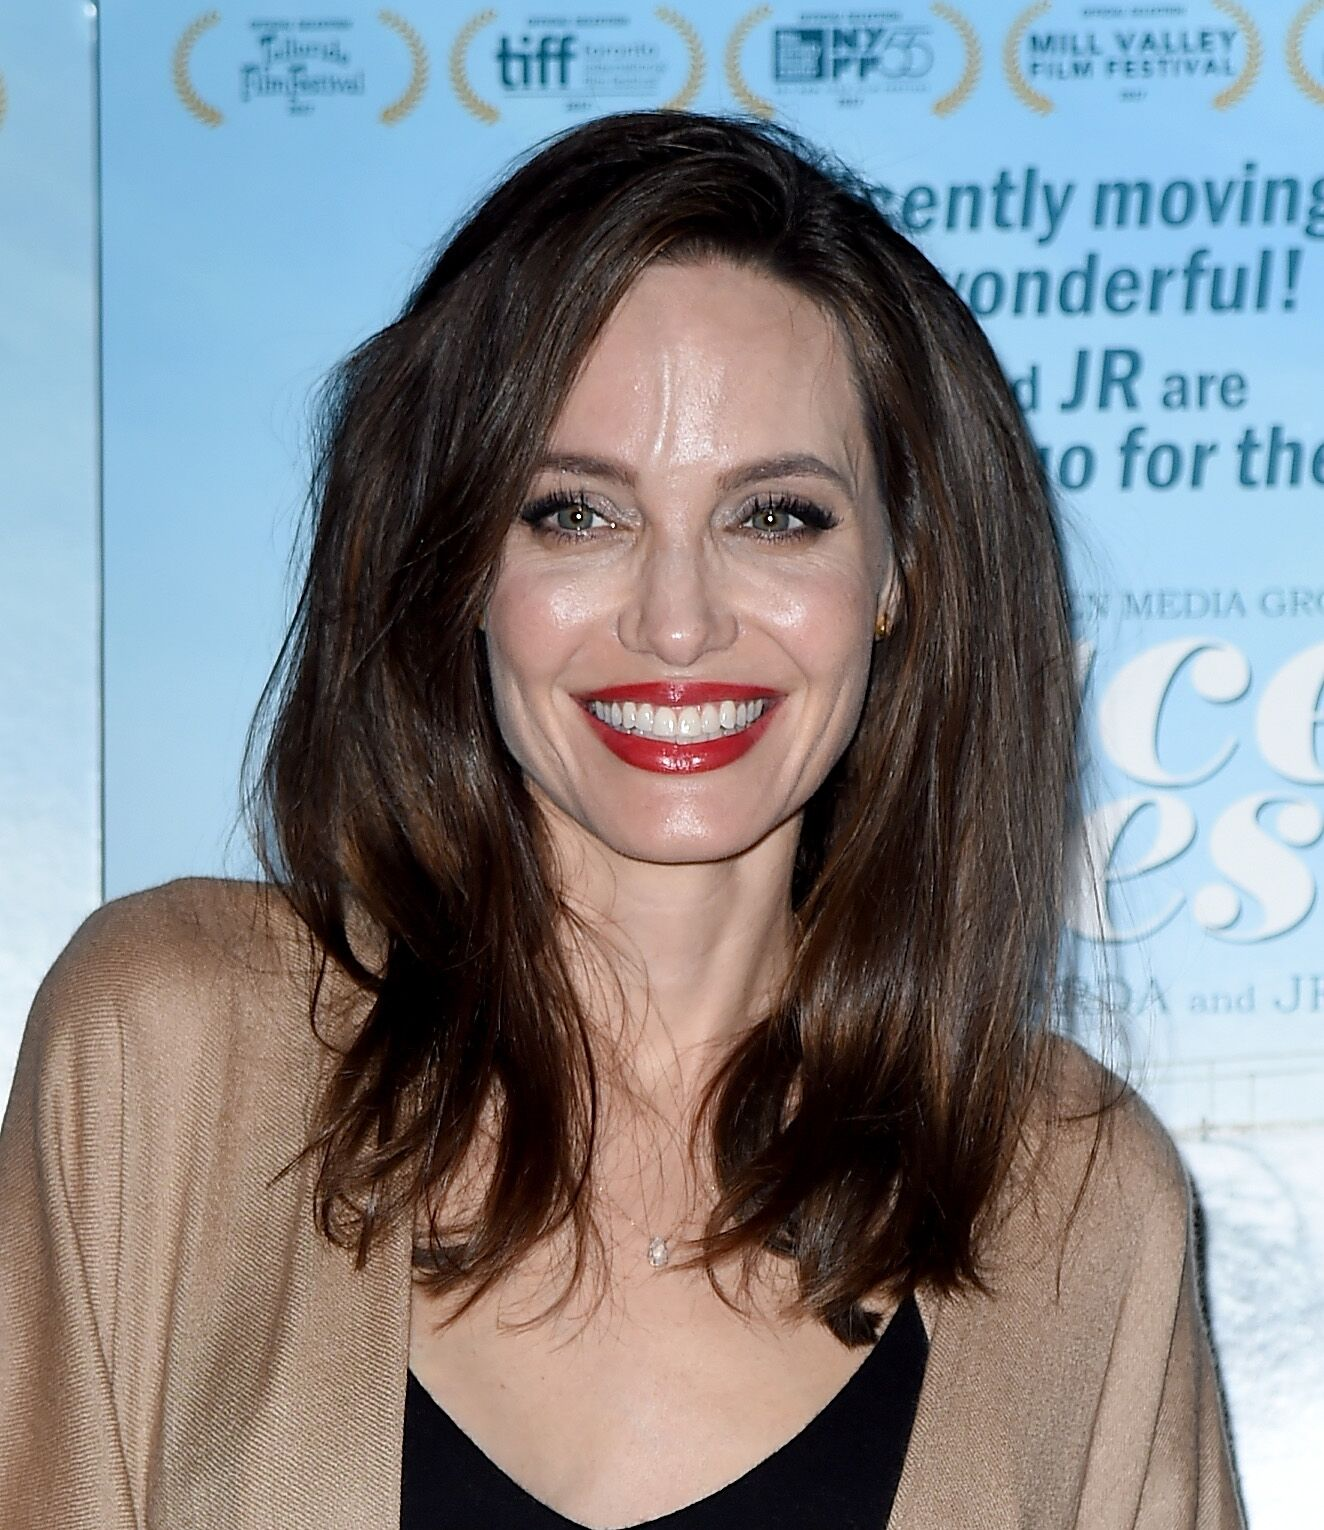 """Angelina Jolie attends the premiere of Cohen Media Group's """"Faces Places"""" at Pacific Design Center on October 11, 2017 in West Hollywood, California. 